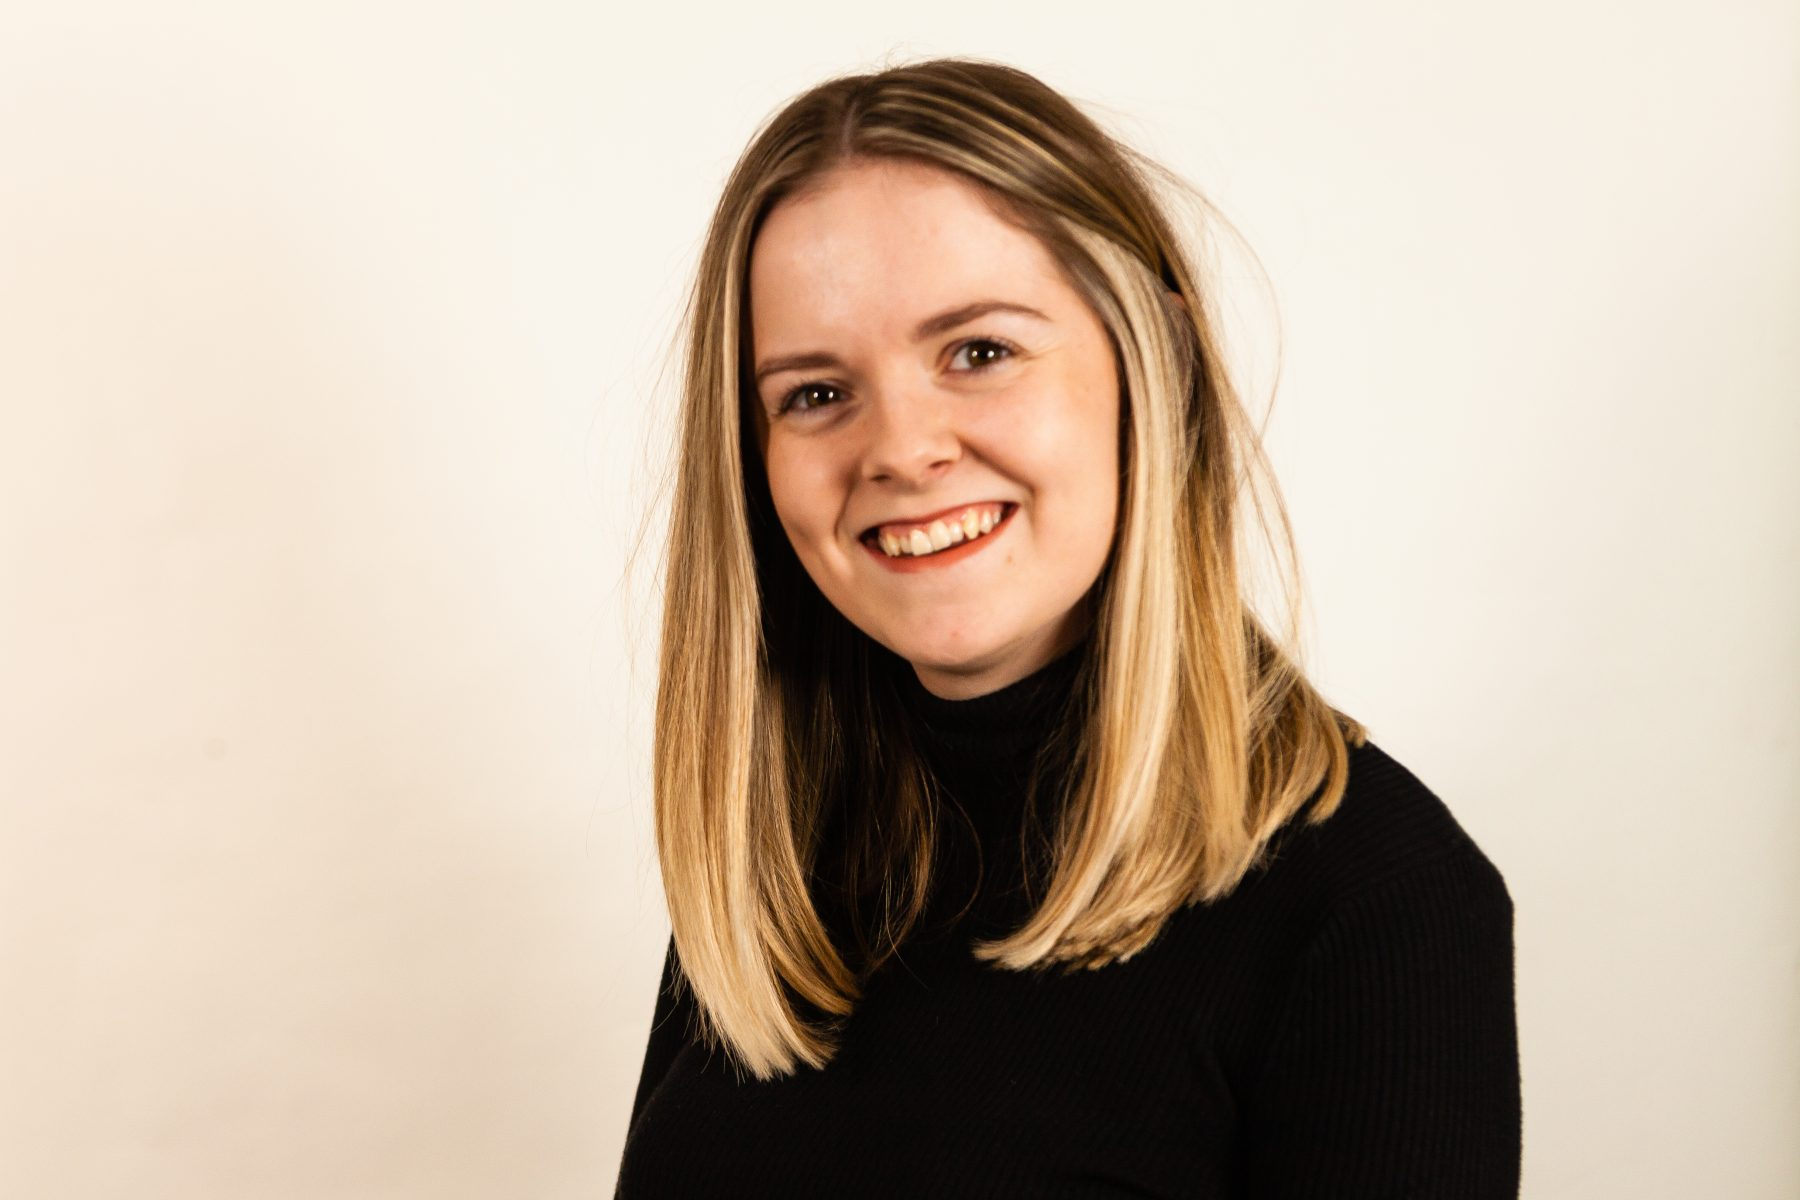 Catriona Quinn is a member of the award-winning PR team at Holyrood PR agency in Edinburgh, Scotland